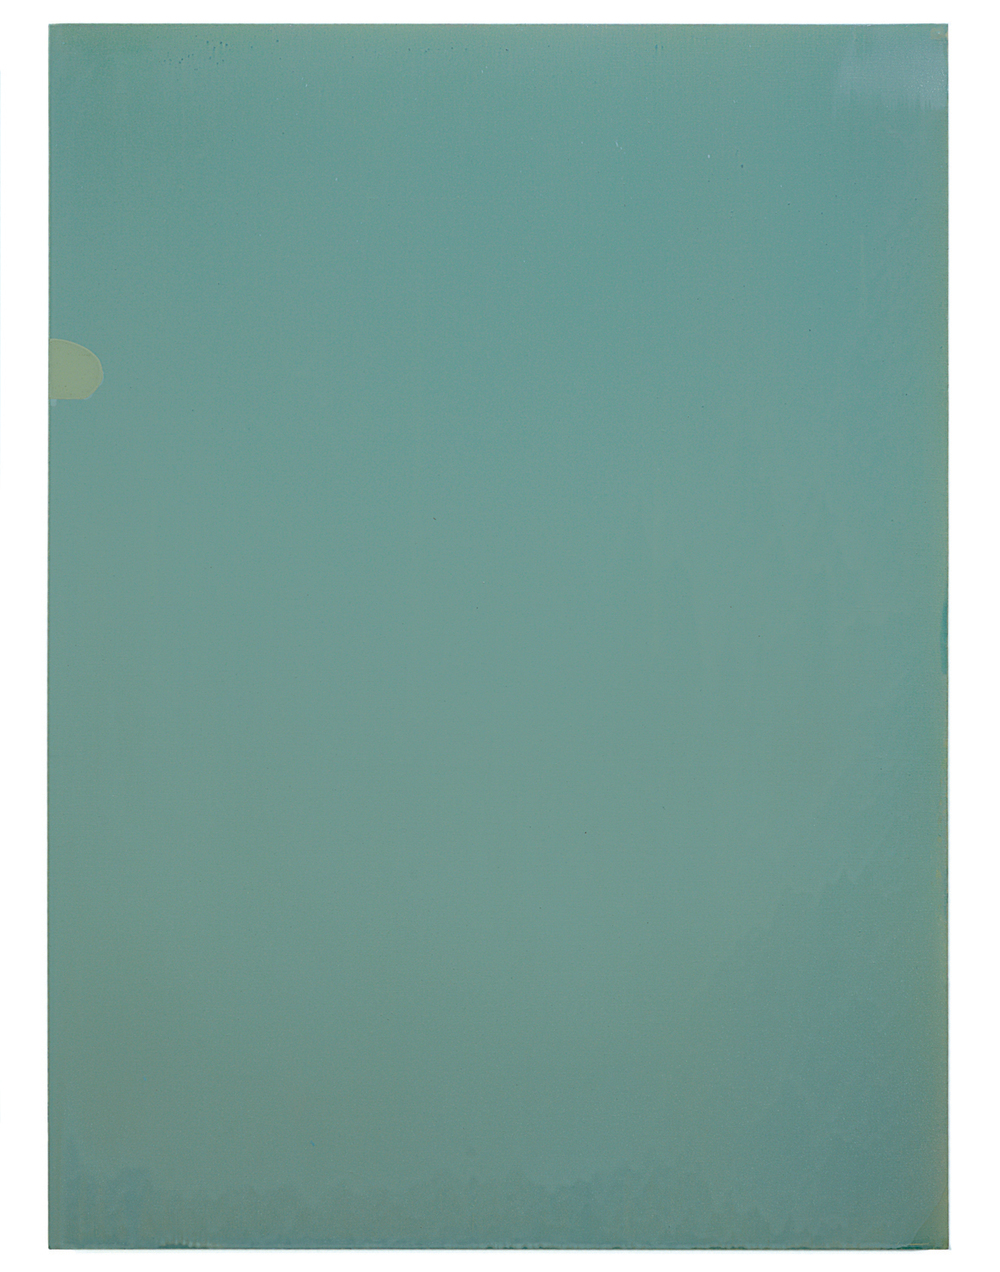 Luke HENG Green on White 2015 Oil on linen H130 x W95 x D5 cm